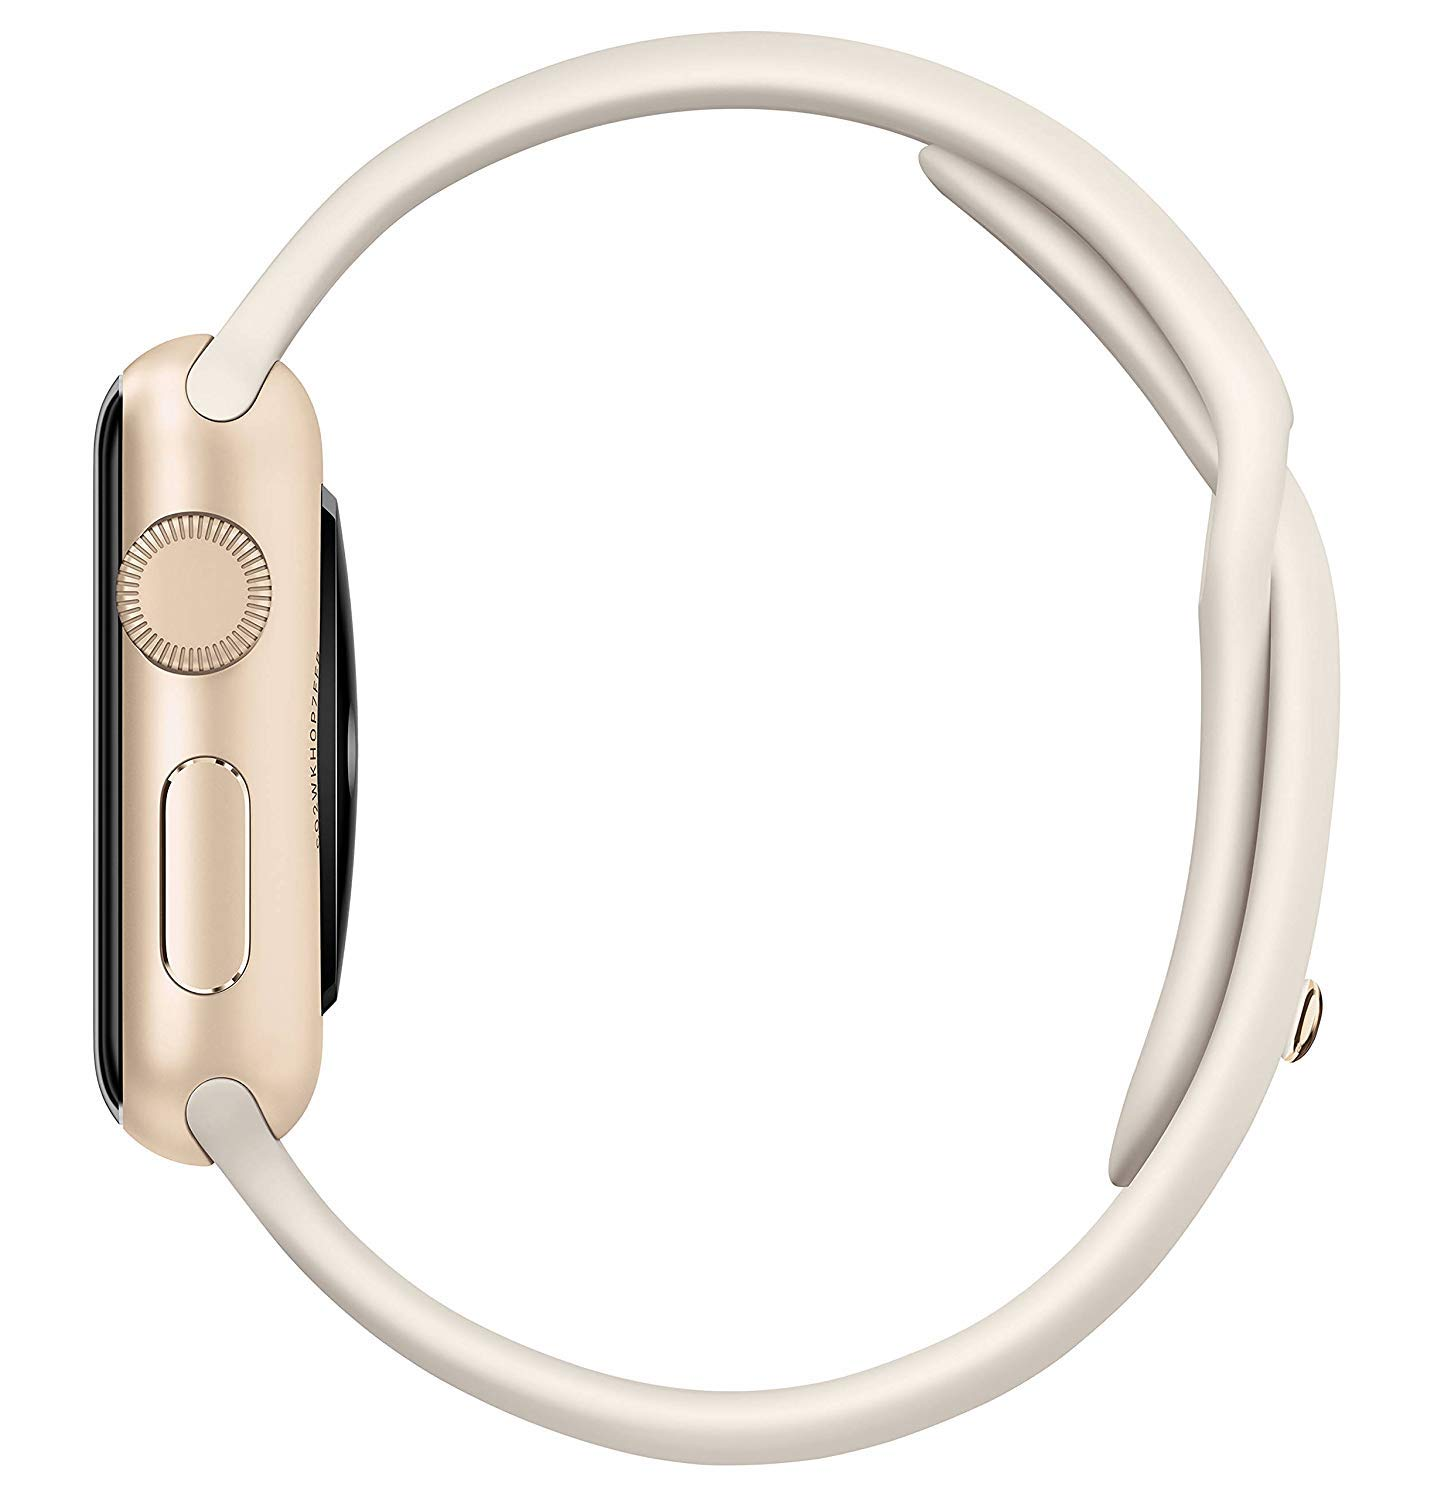 Apple Watch Series 1 Smartwatch 38mm Gold Aluminum Case, White Sport Band (Renewed) by Apple (Image #3)